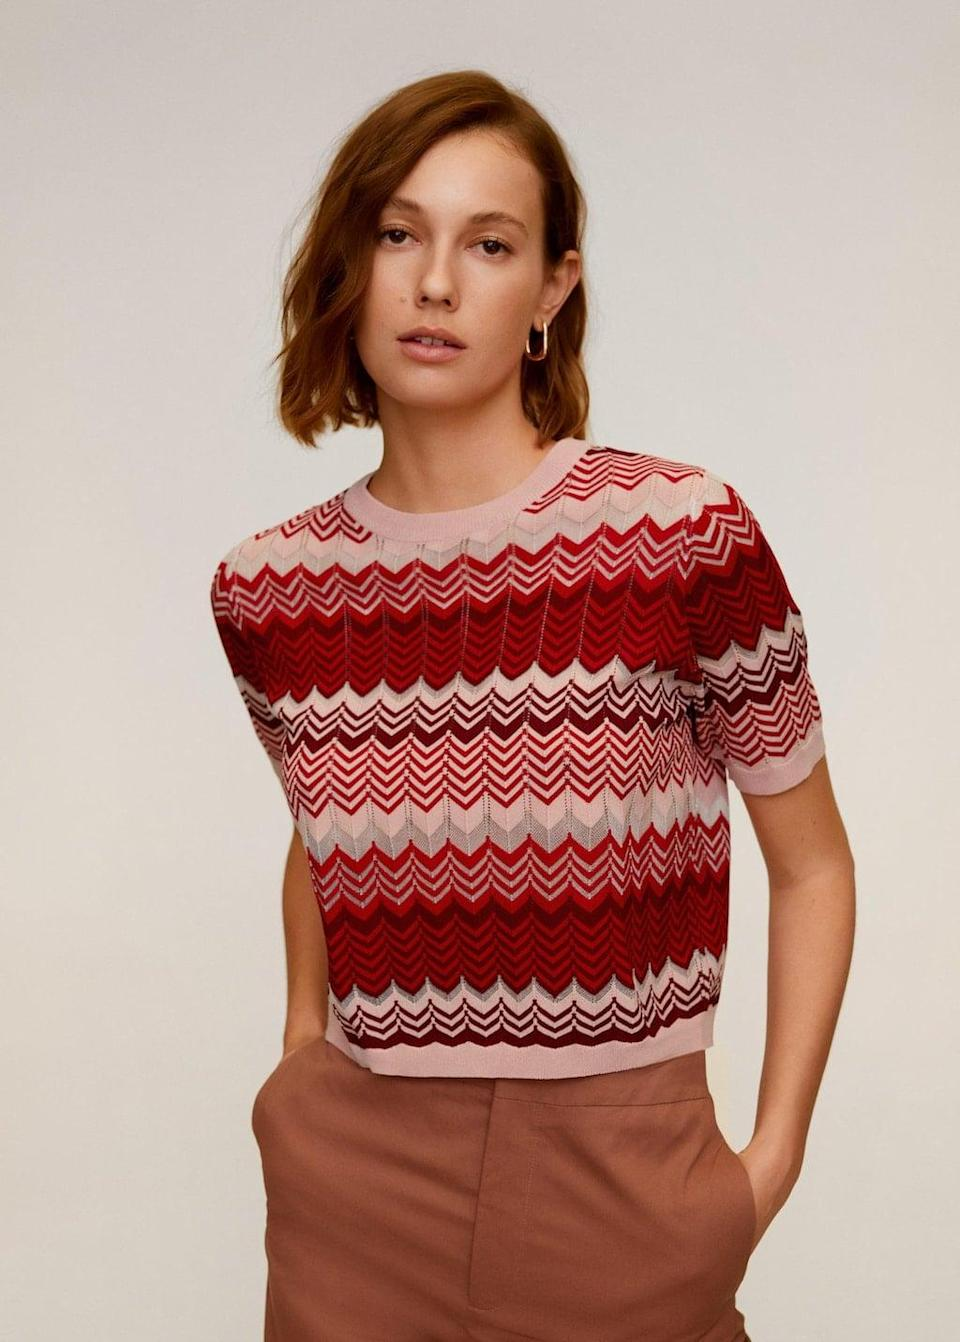 <p>Pair this <span>Printed knit top</span> ($23, originally $46) with tailored pants and slingback heels for a dressy look, or your favorite casual jeans and sneakers for a sporty-chic contrast.</p>